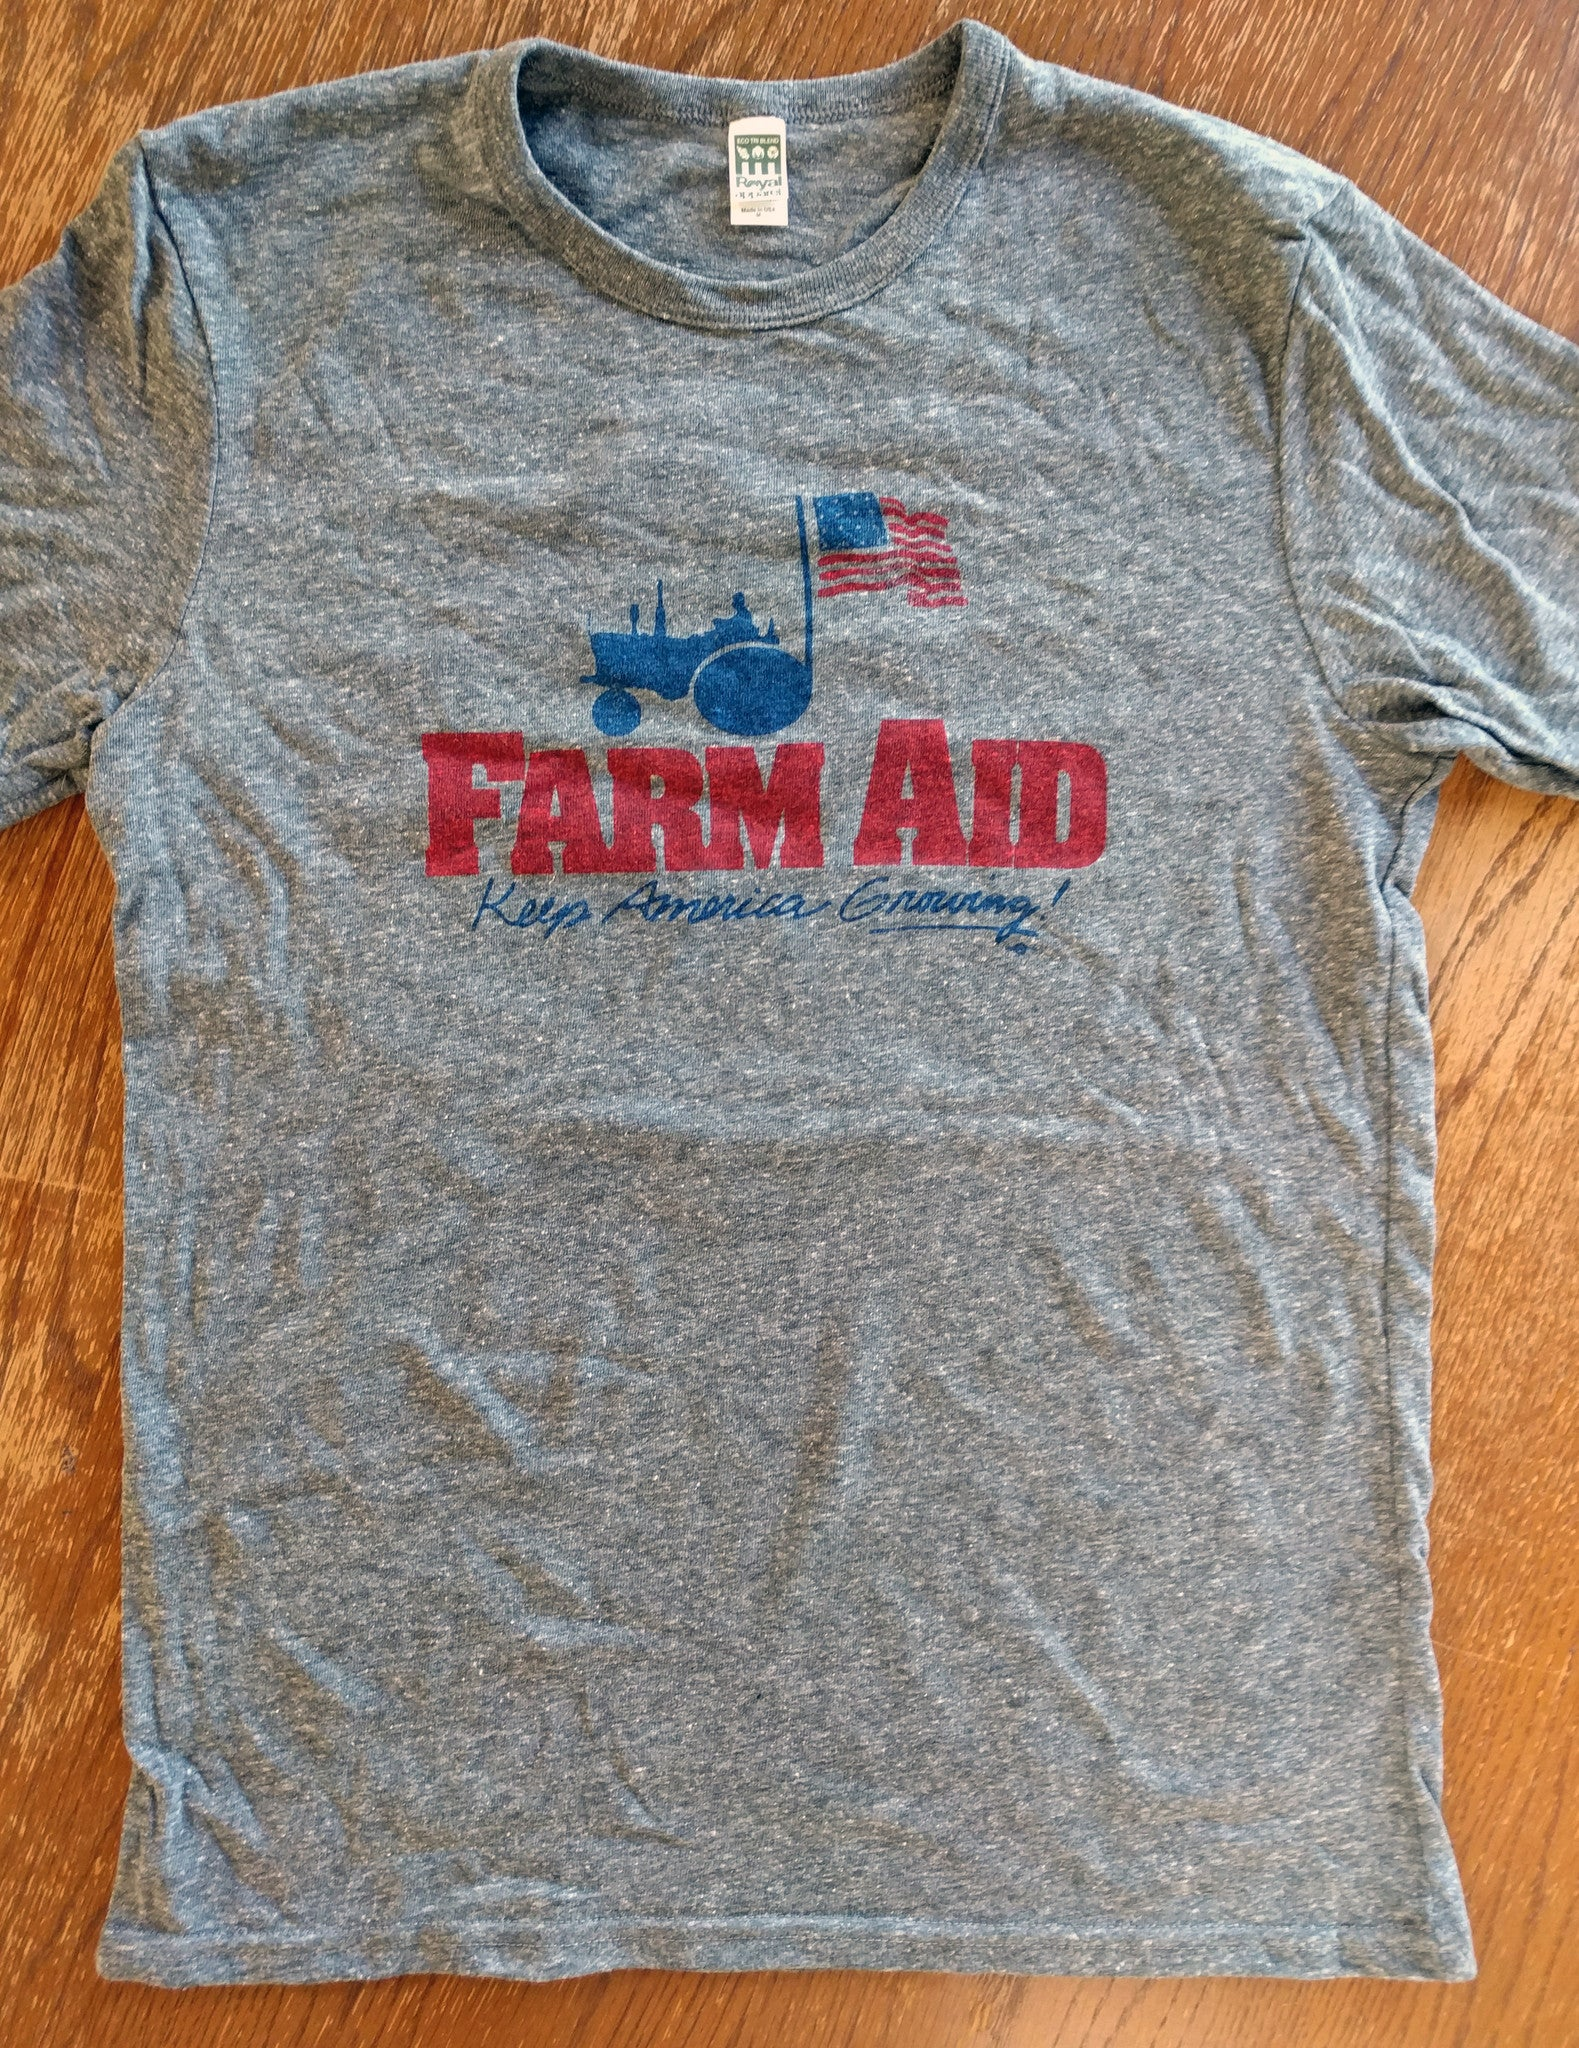 Farm Aid Retro Shirt - Unisex